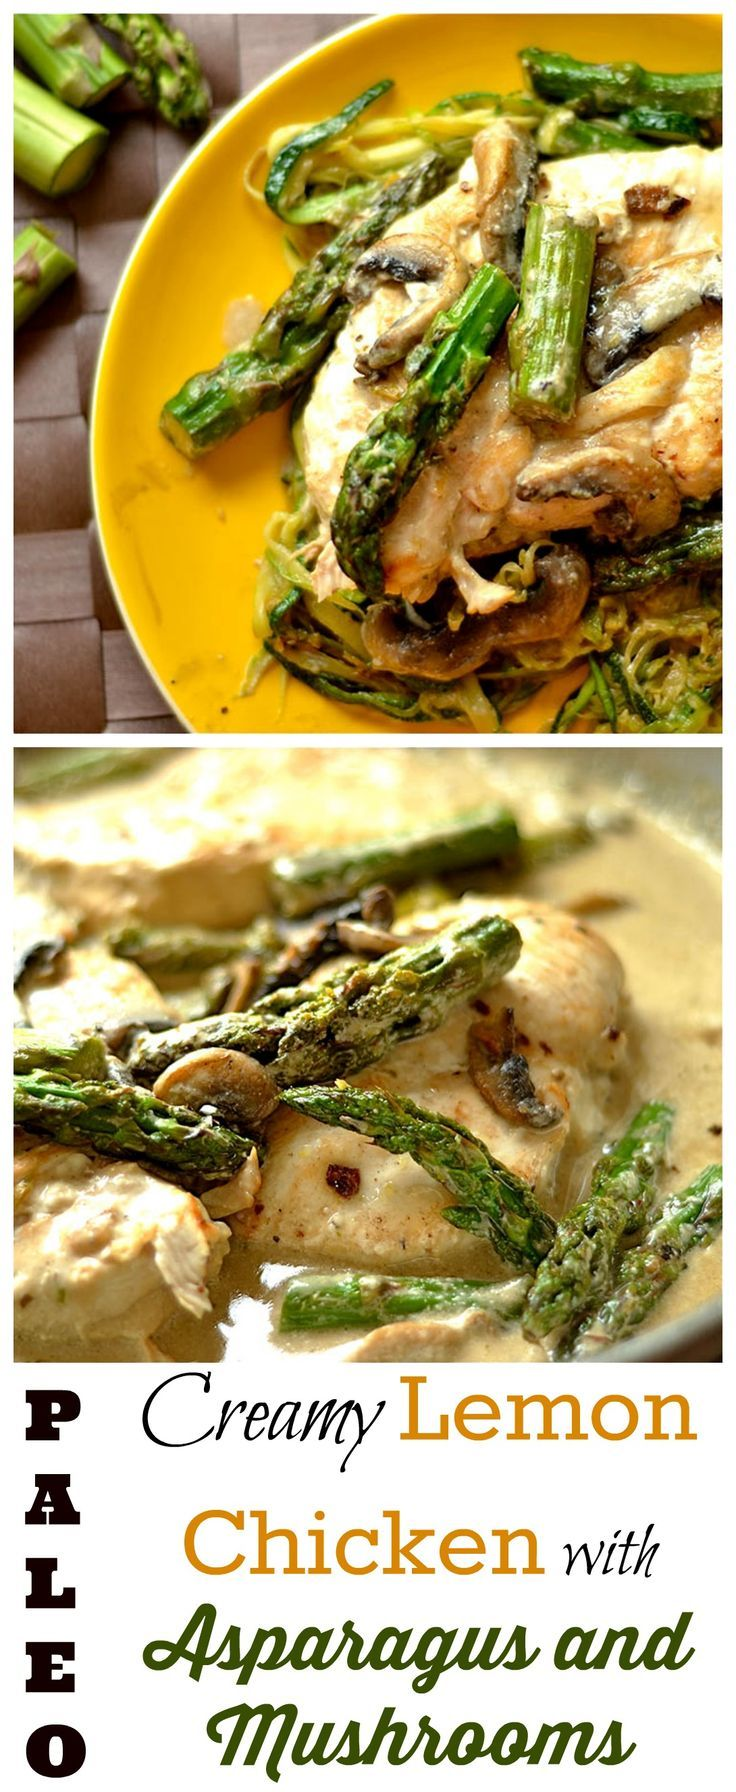 Creamy Lemon Chicken with Asparagus Mushroom - Delicious creamy chicken that is dairy free, Paleo, and Gluten-Free.